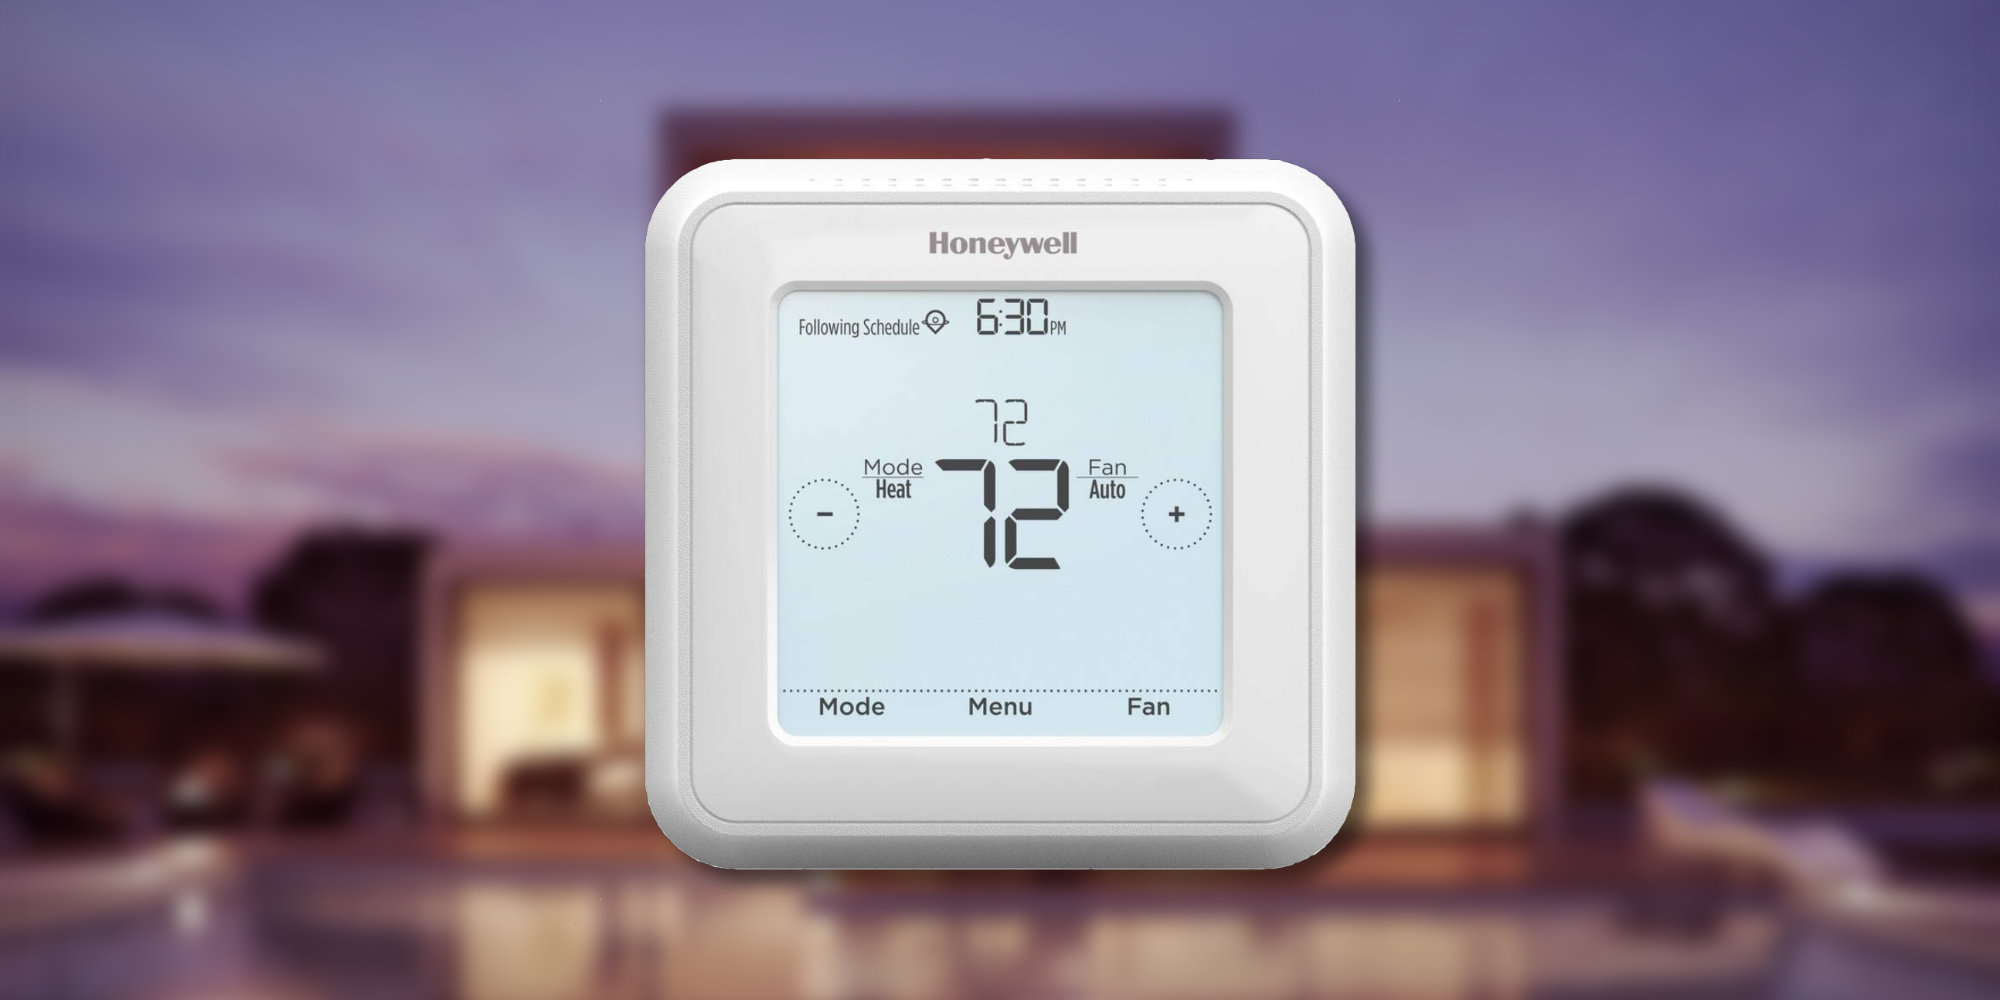 For $65, Amazon will ship Honeywell's Touchscreen Thermostat to your door (Reg. up to $90)